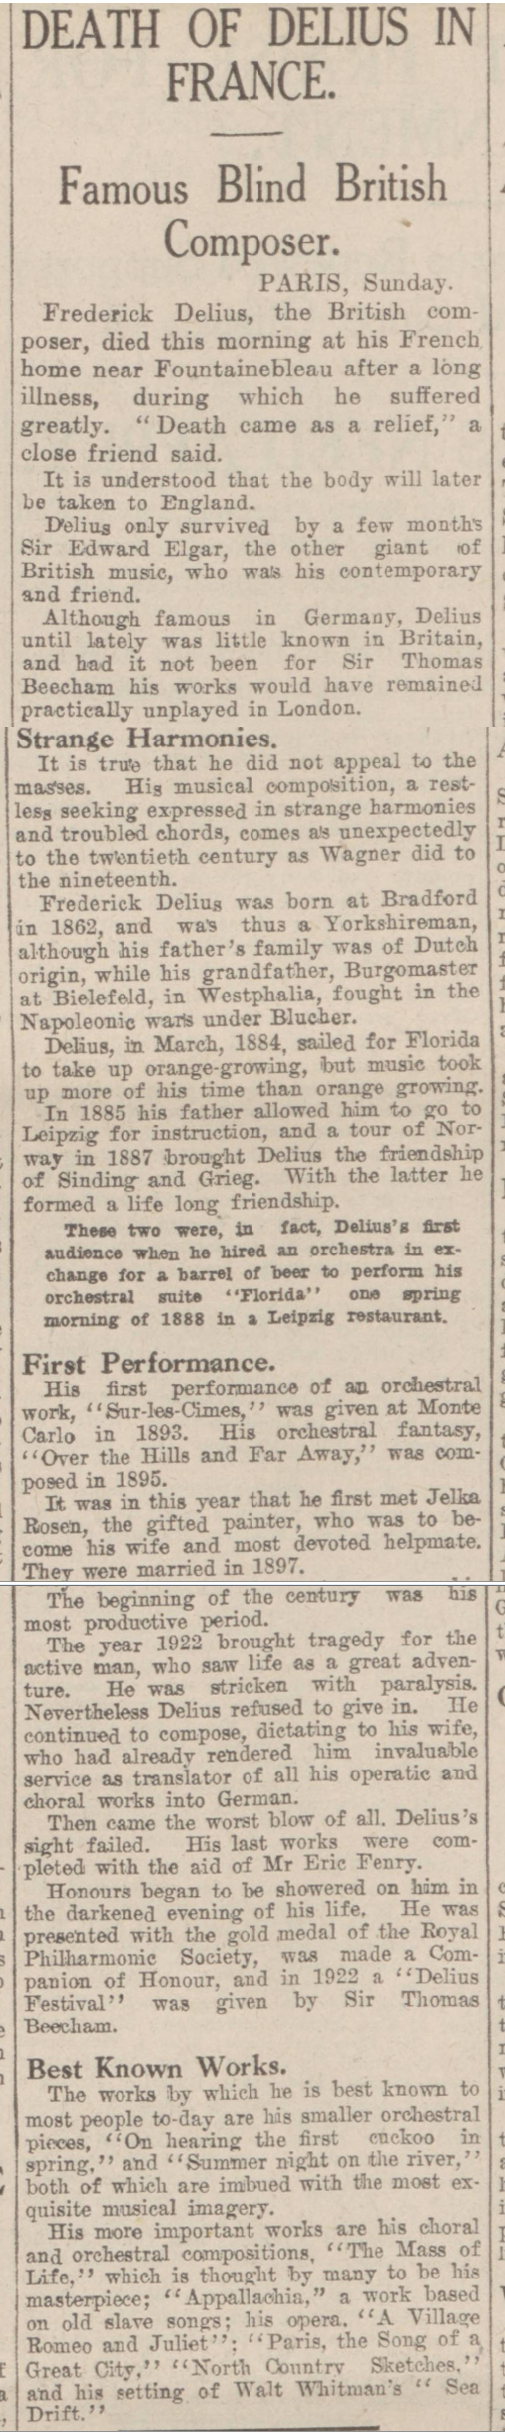 historical newspaper report about the death of frederick delius